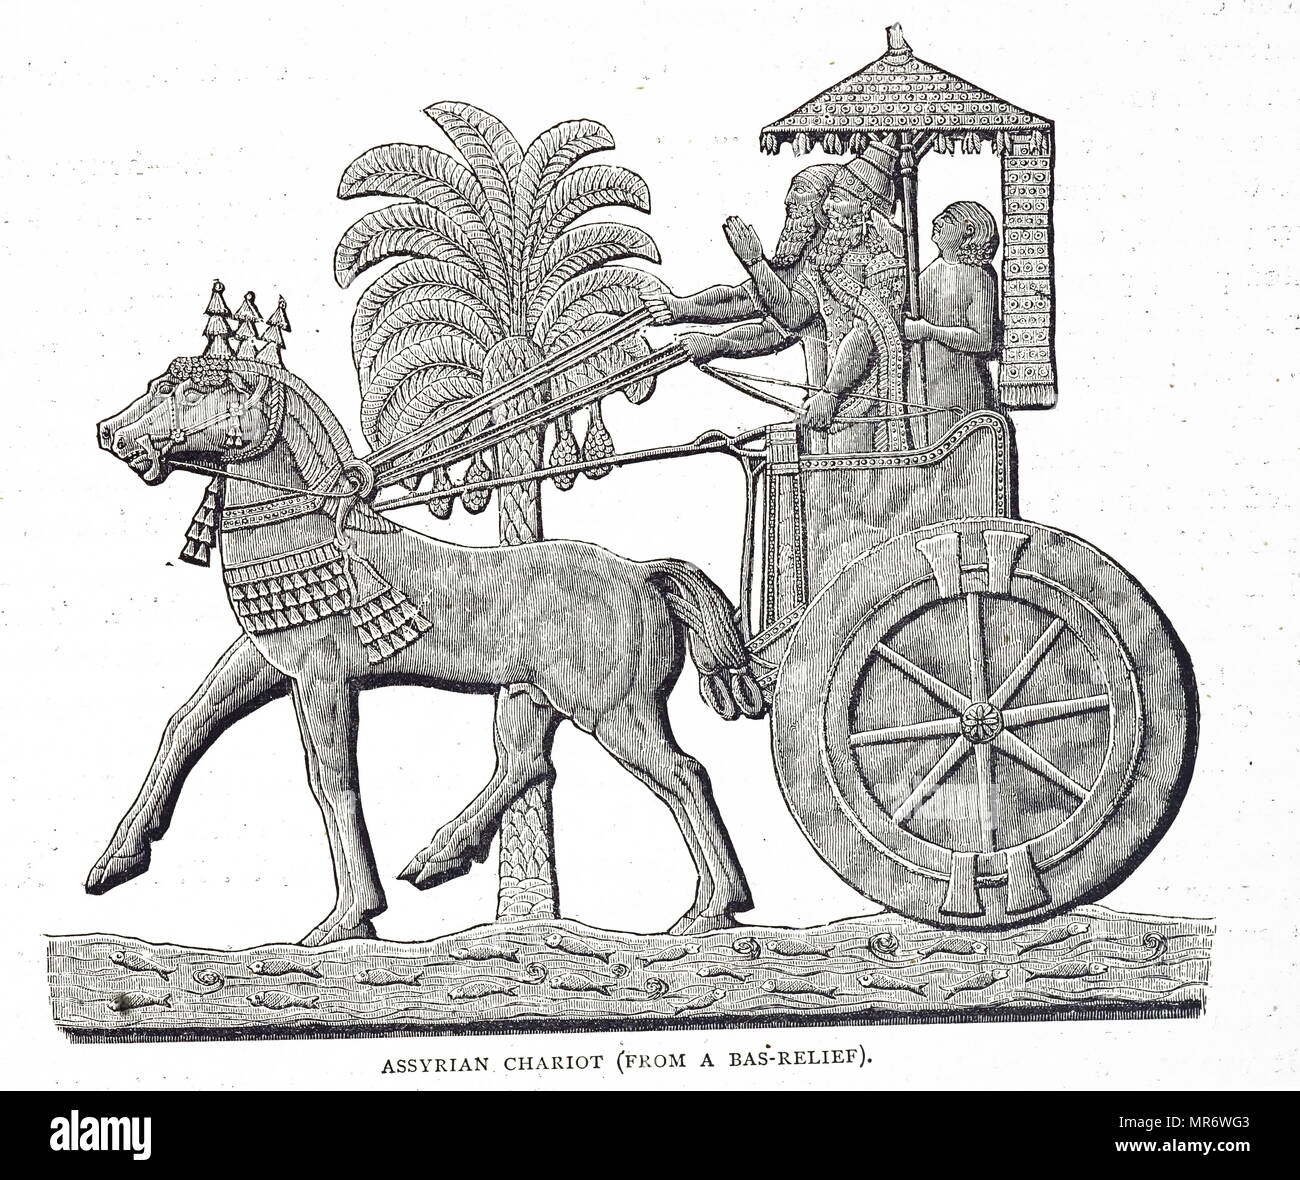 Engraving depicting an Assyrian Chariot. Dated 19th century - Stock Image